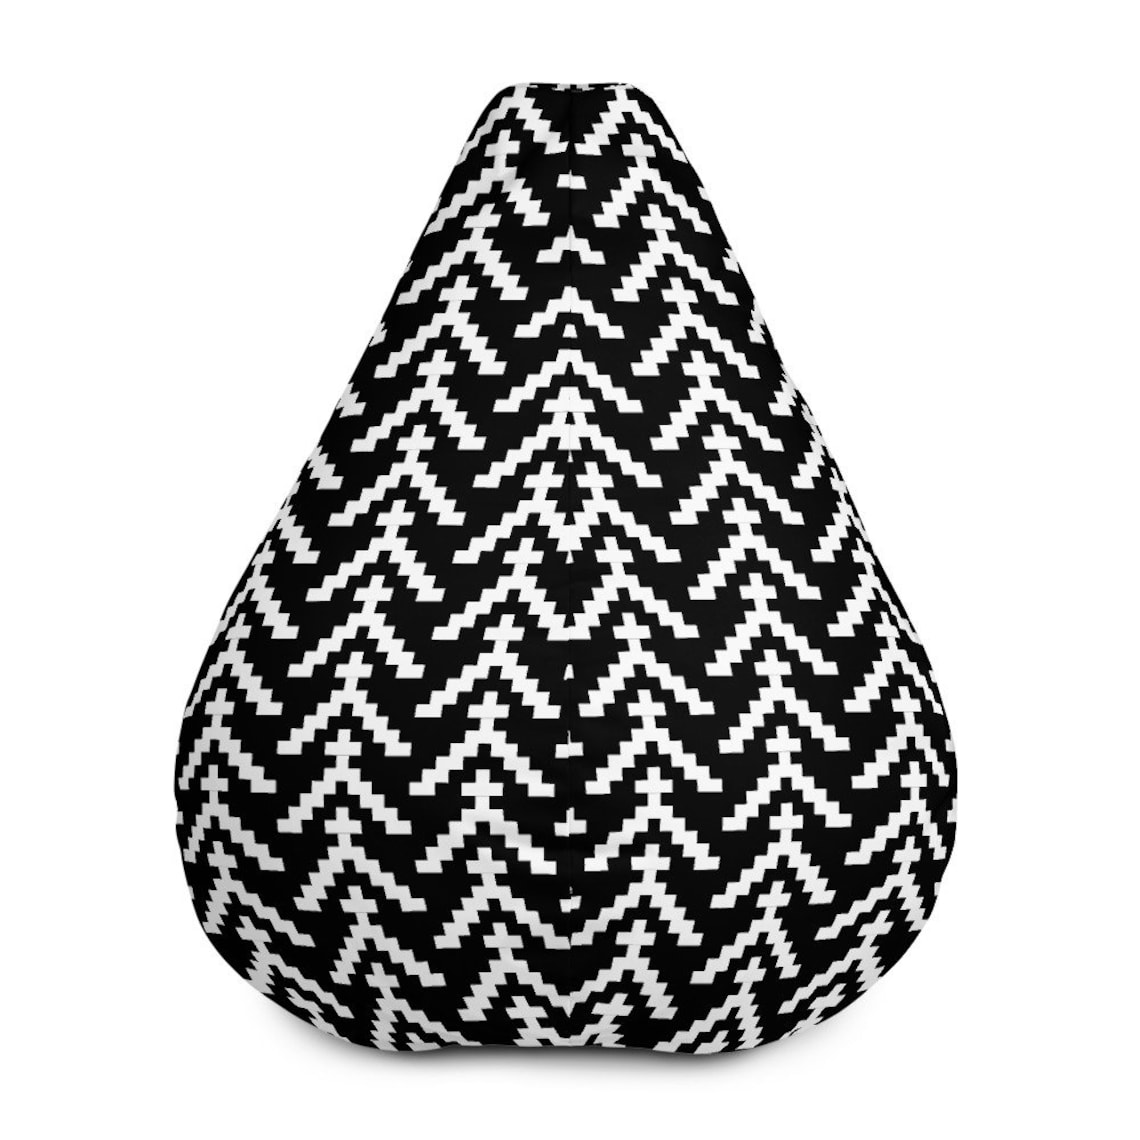 IKAT Bean Bag Chair WITH filling, Clean design, Black base with white detail, Kids Chair, Adult Chair, Gaming Chair, great for Movie Night